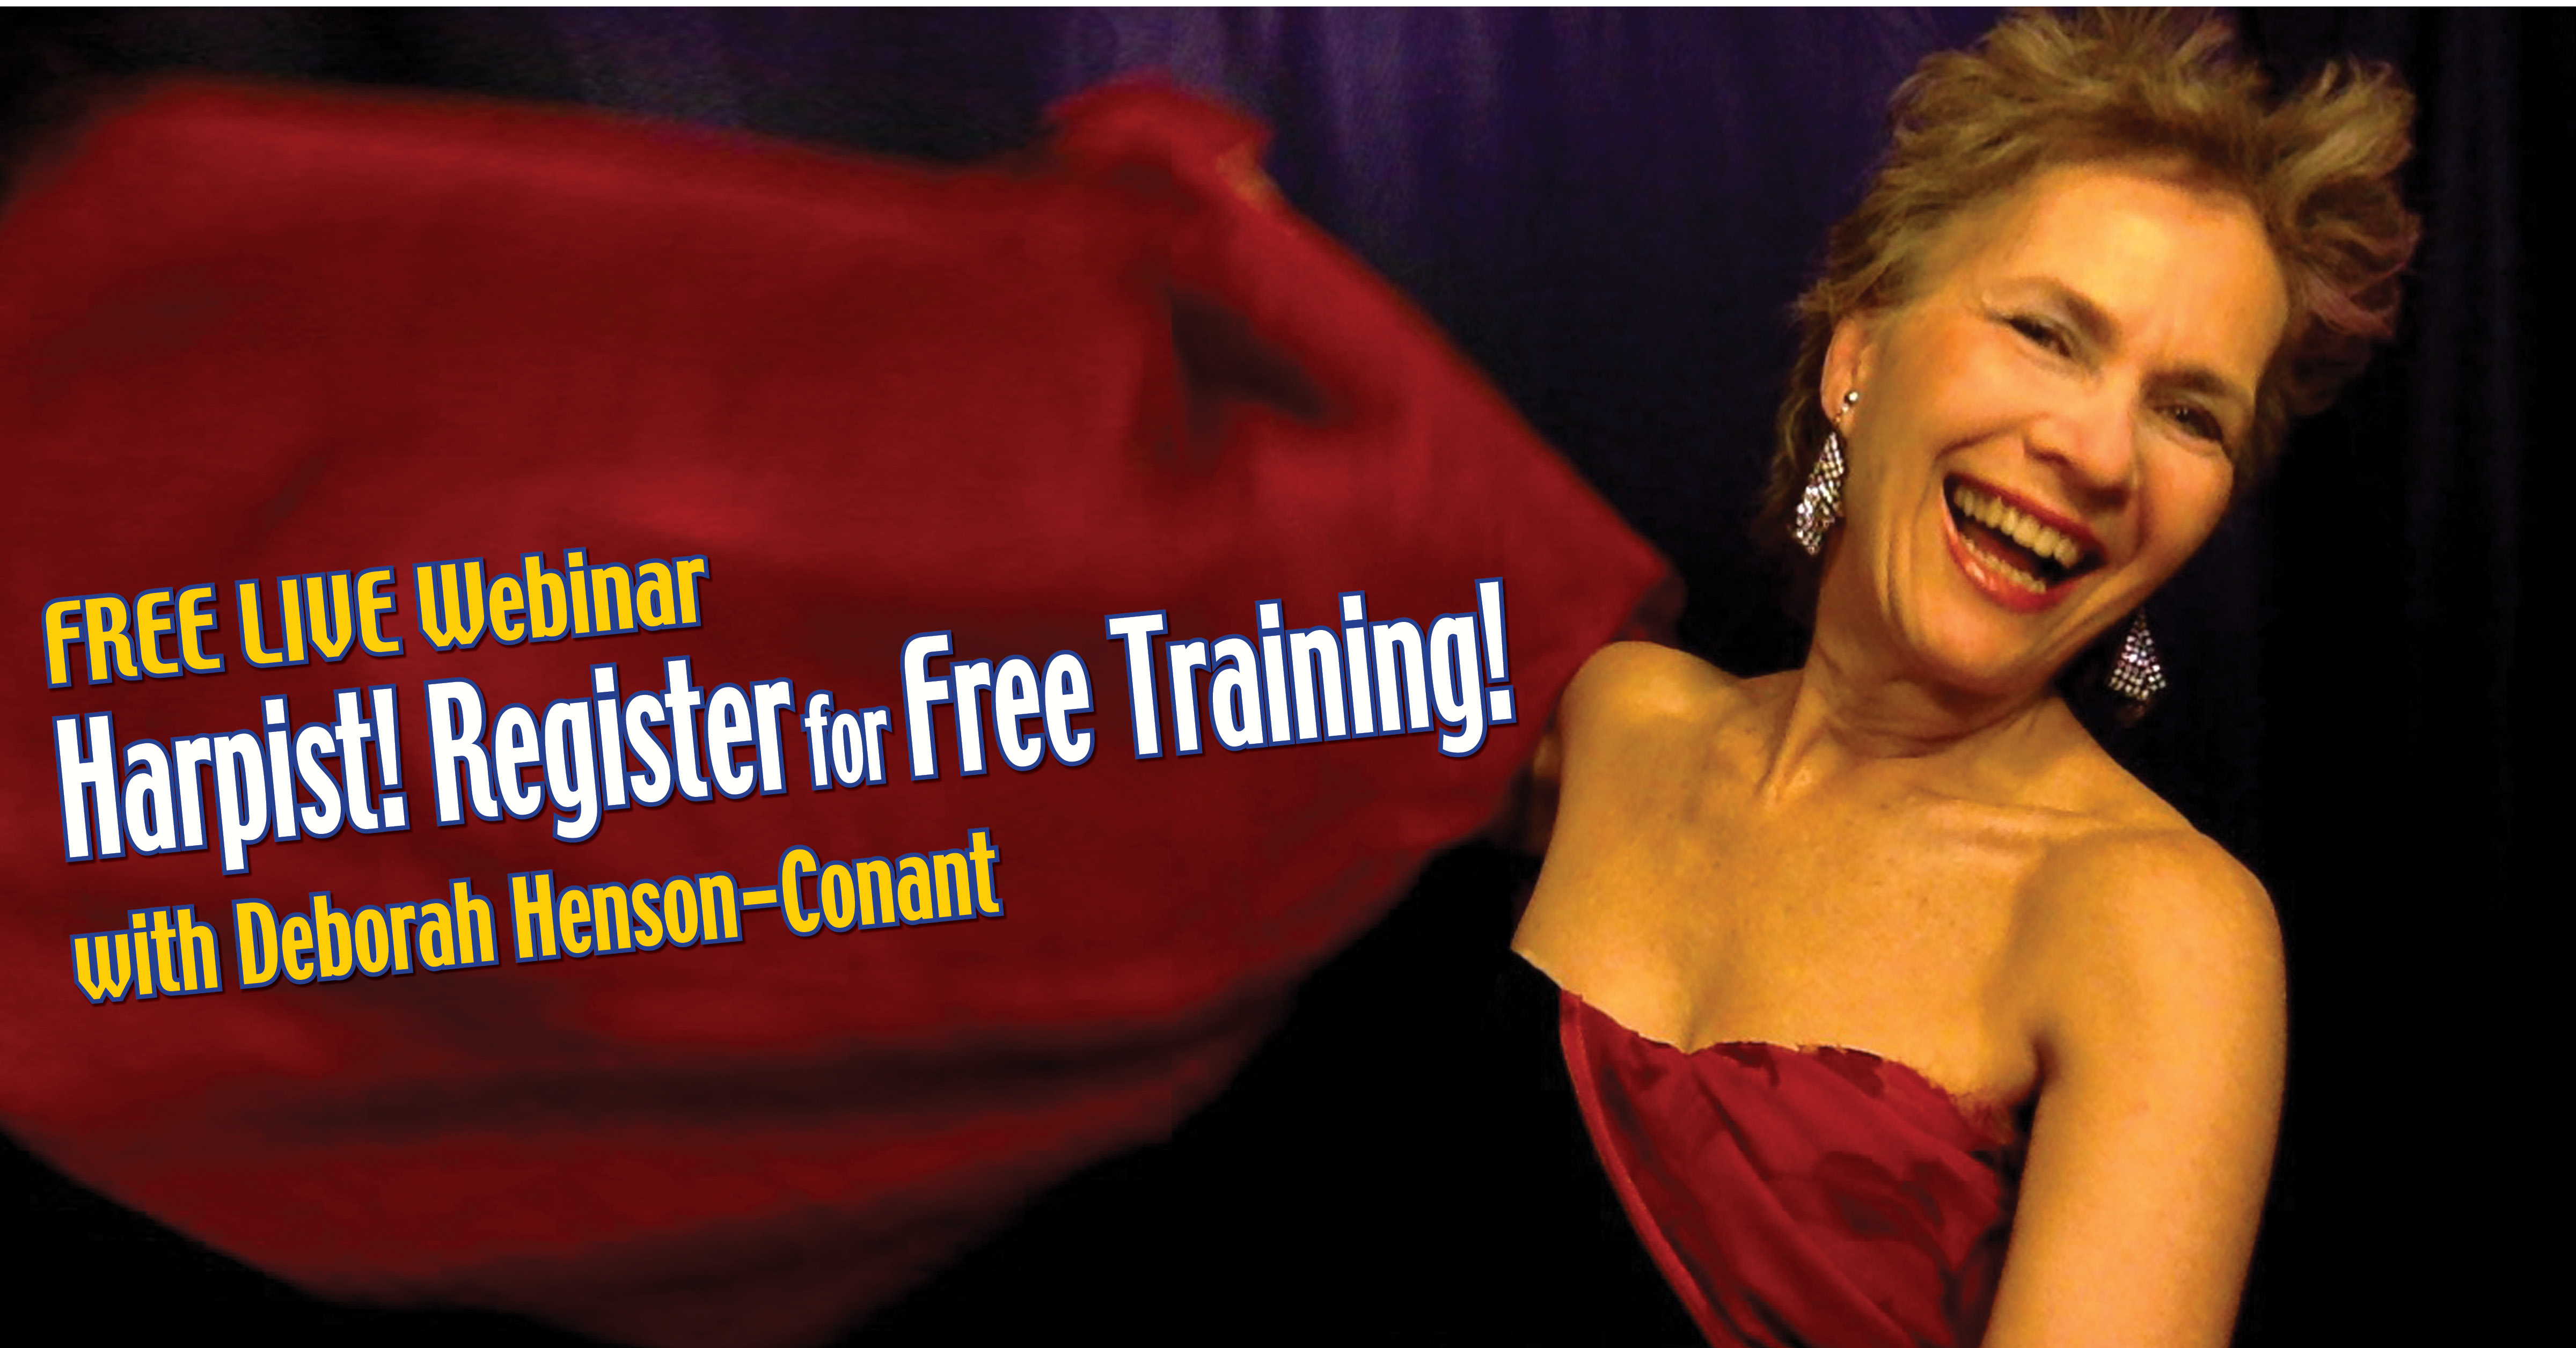 Harpist-register-for-free-training-FB-boostable